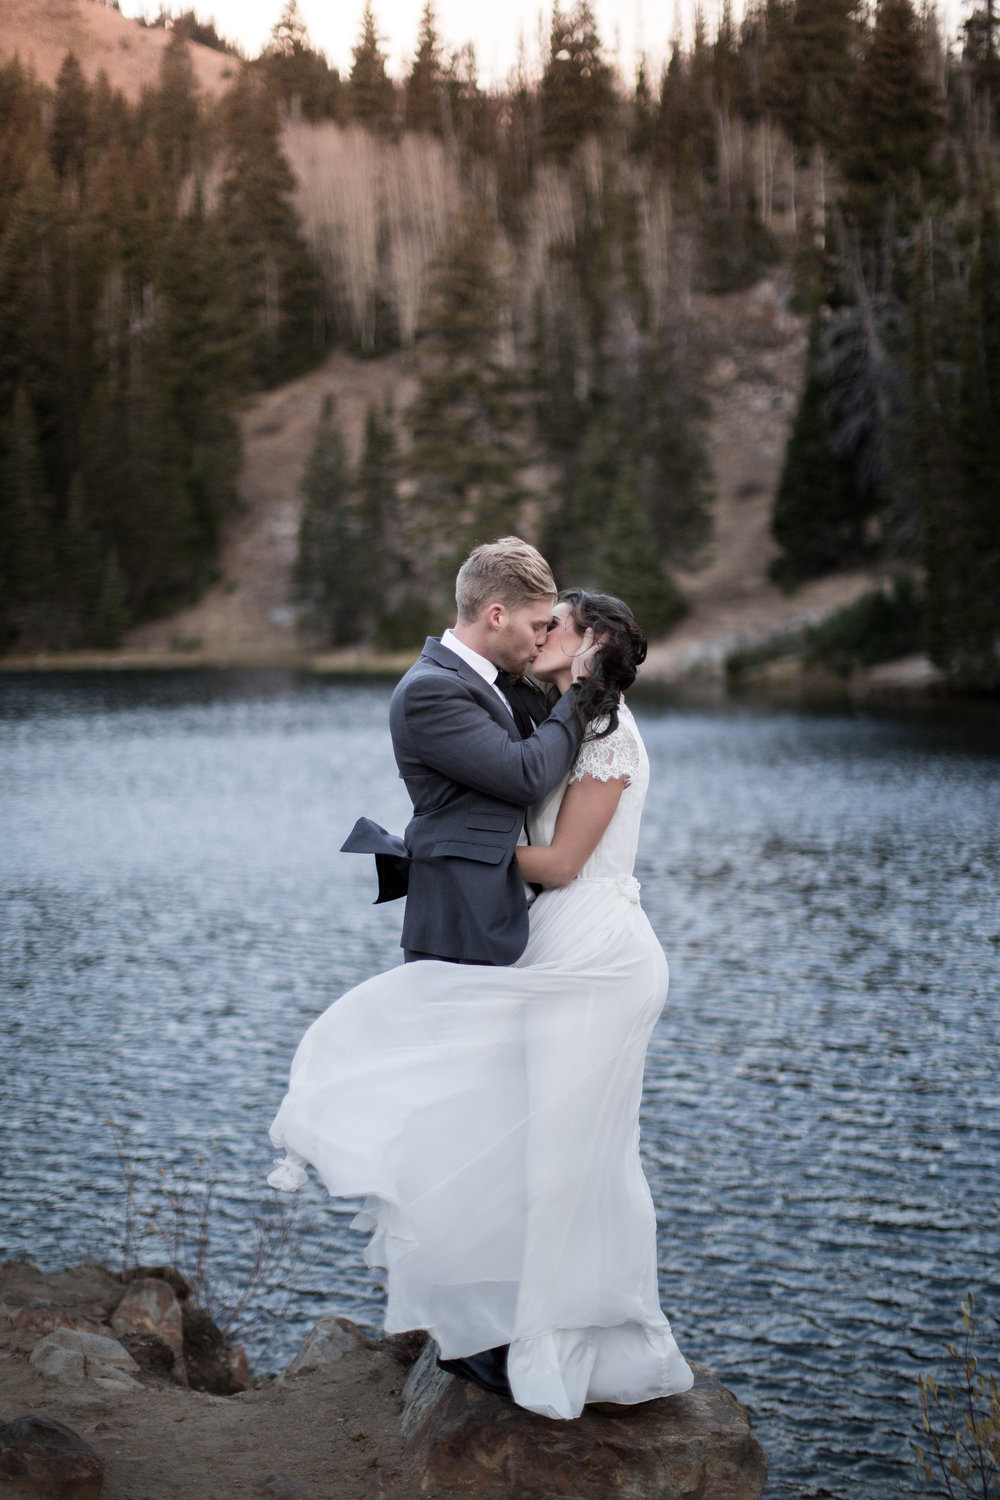 UtahValleyBrideShootTR2016 (43 of 110).jpg